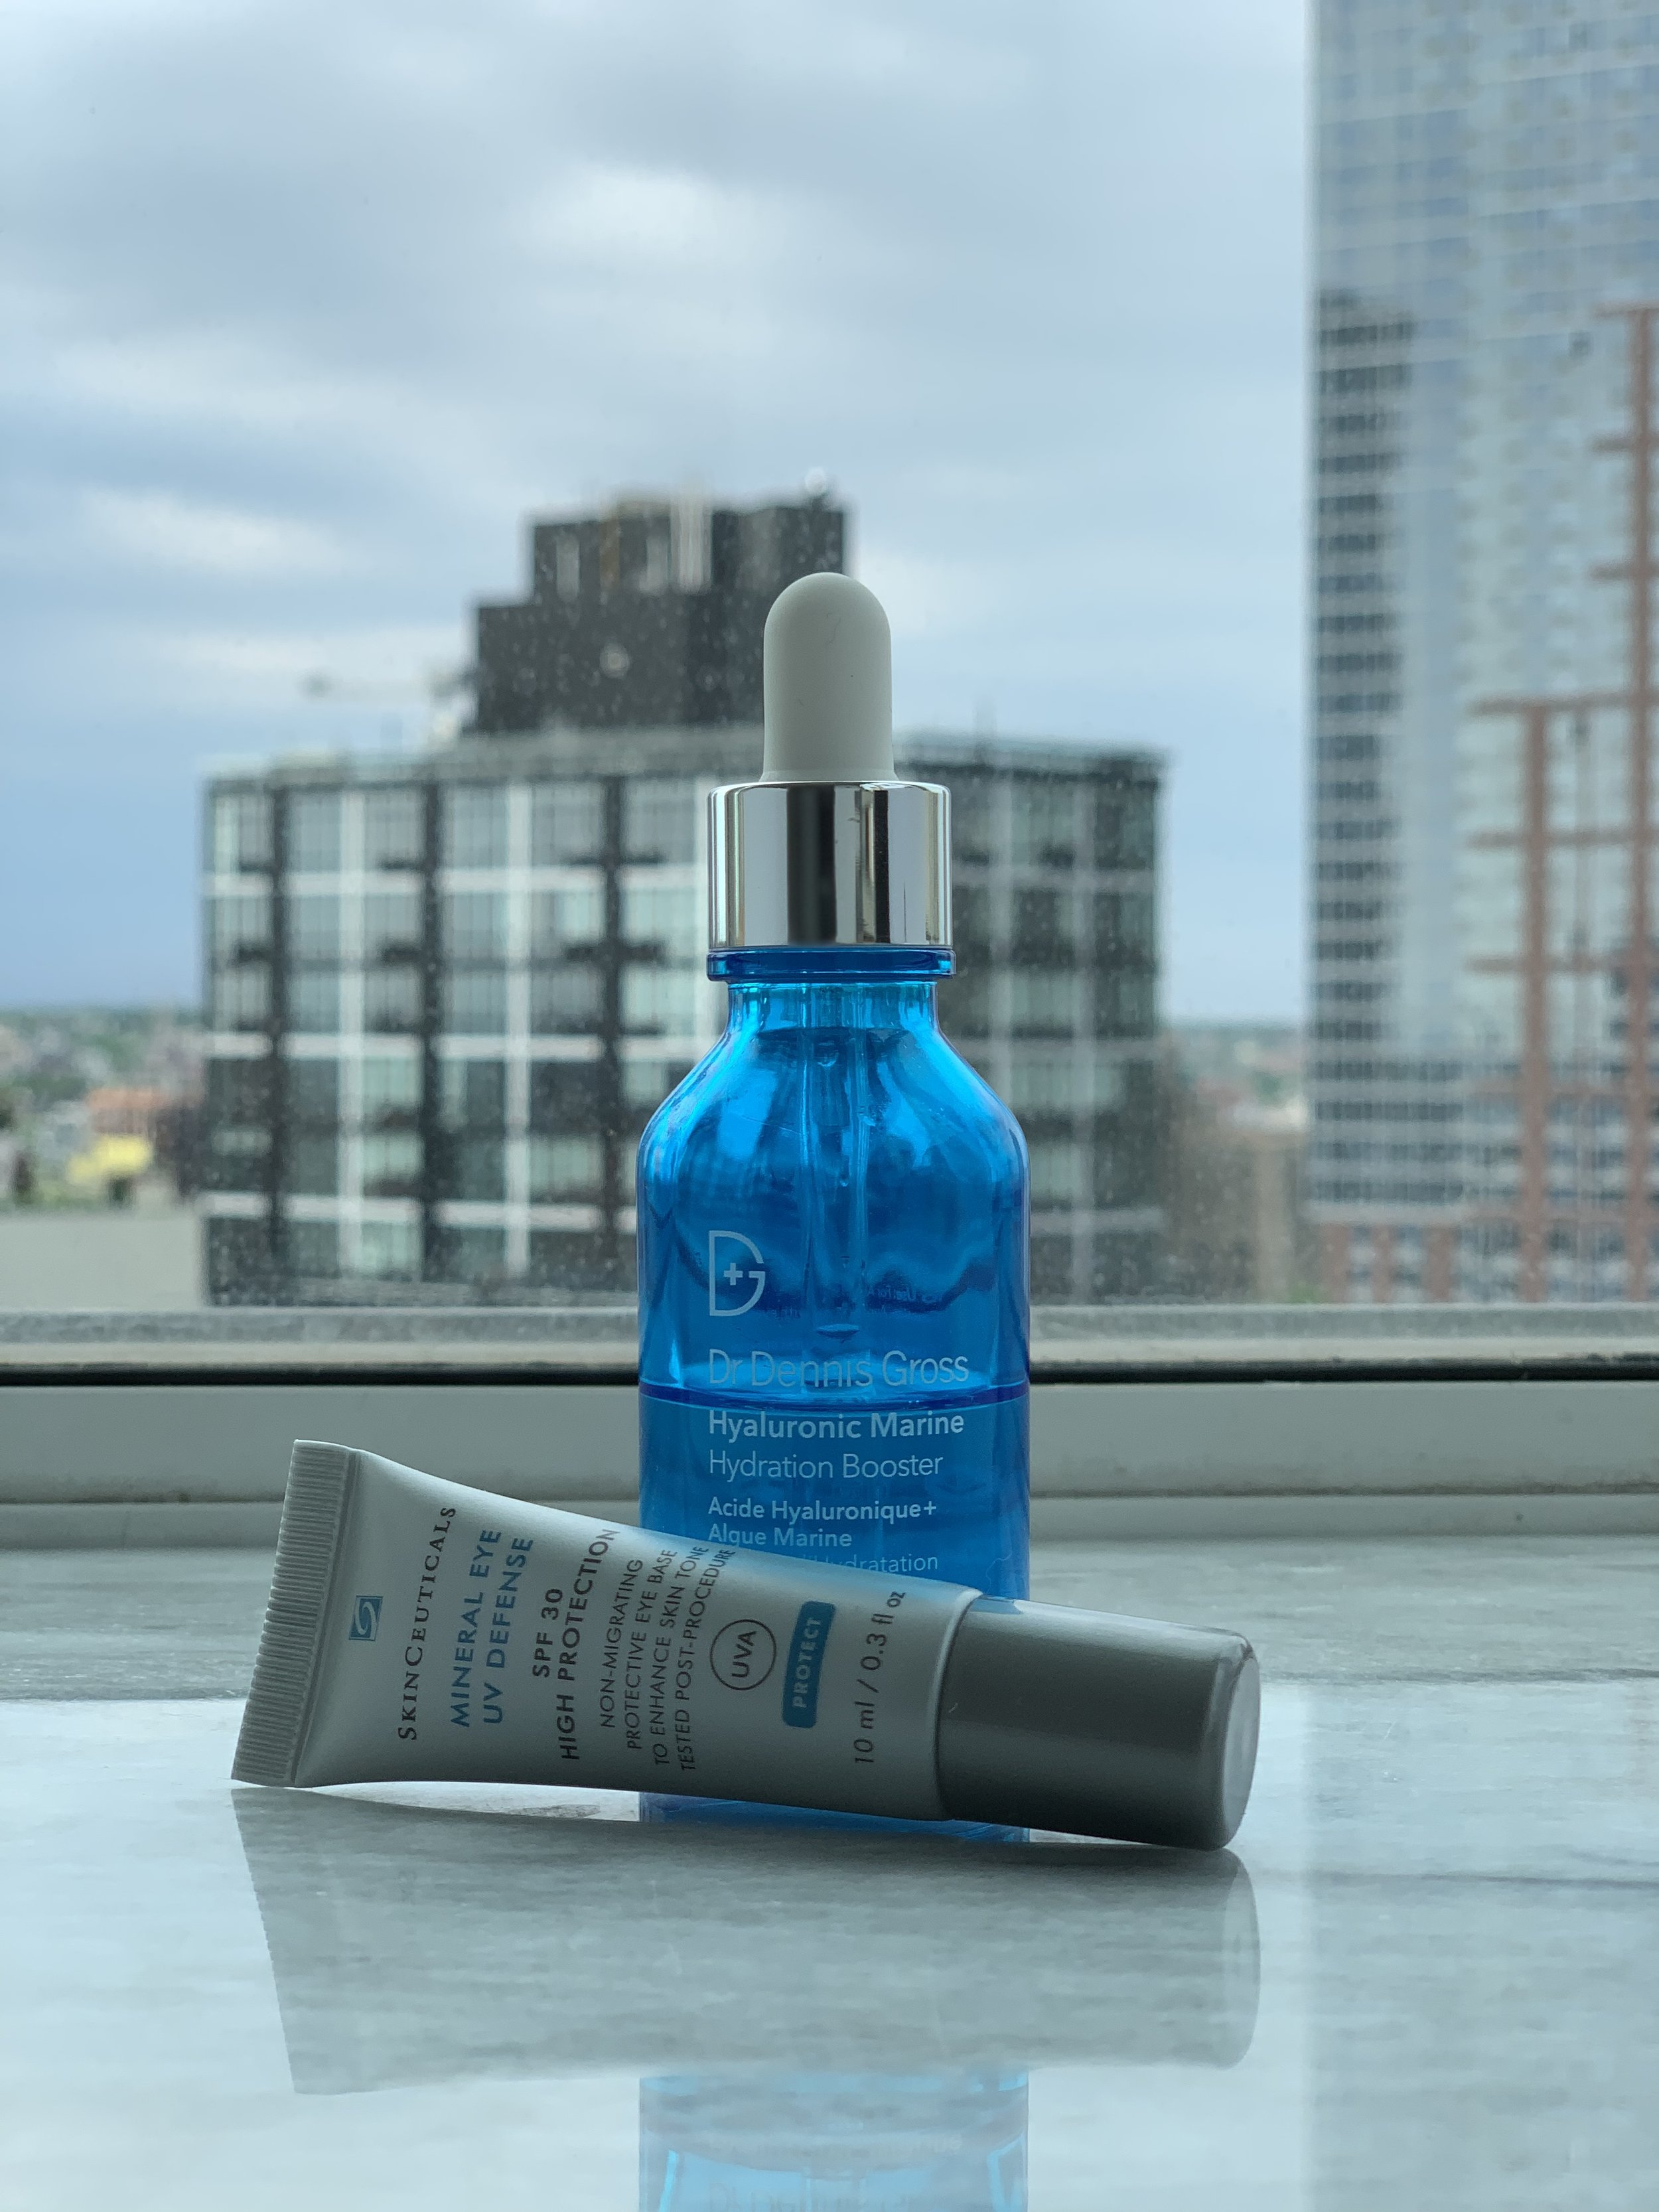 My OG skin care from Dr. Gross and Skinceuticals.